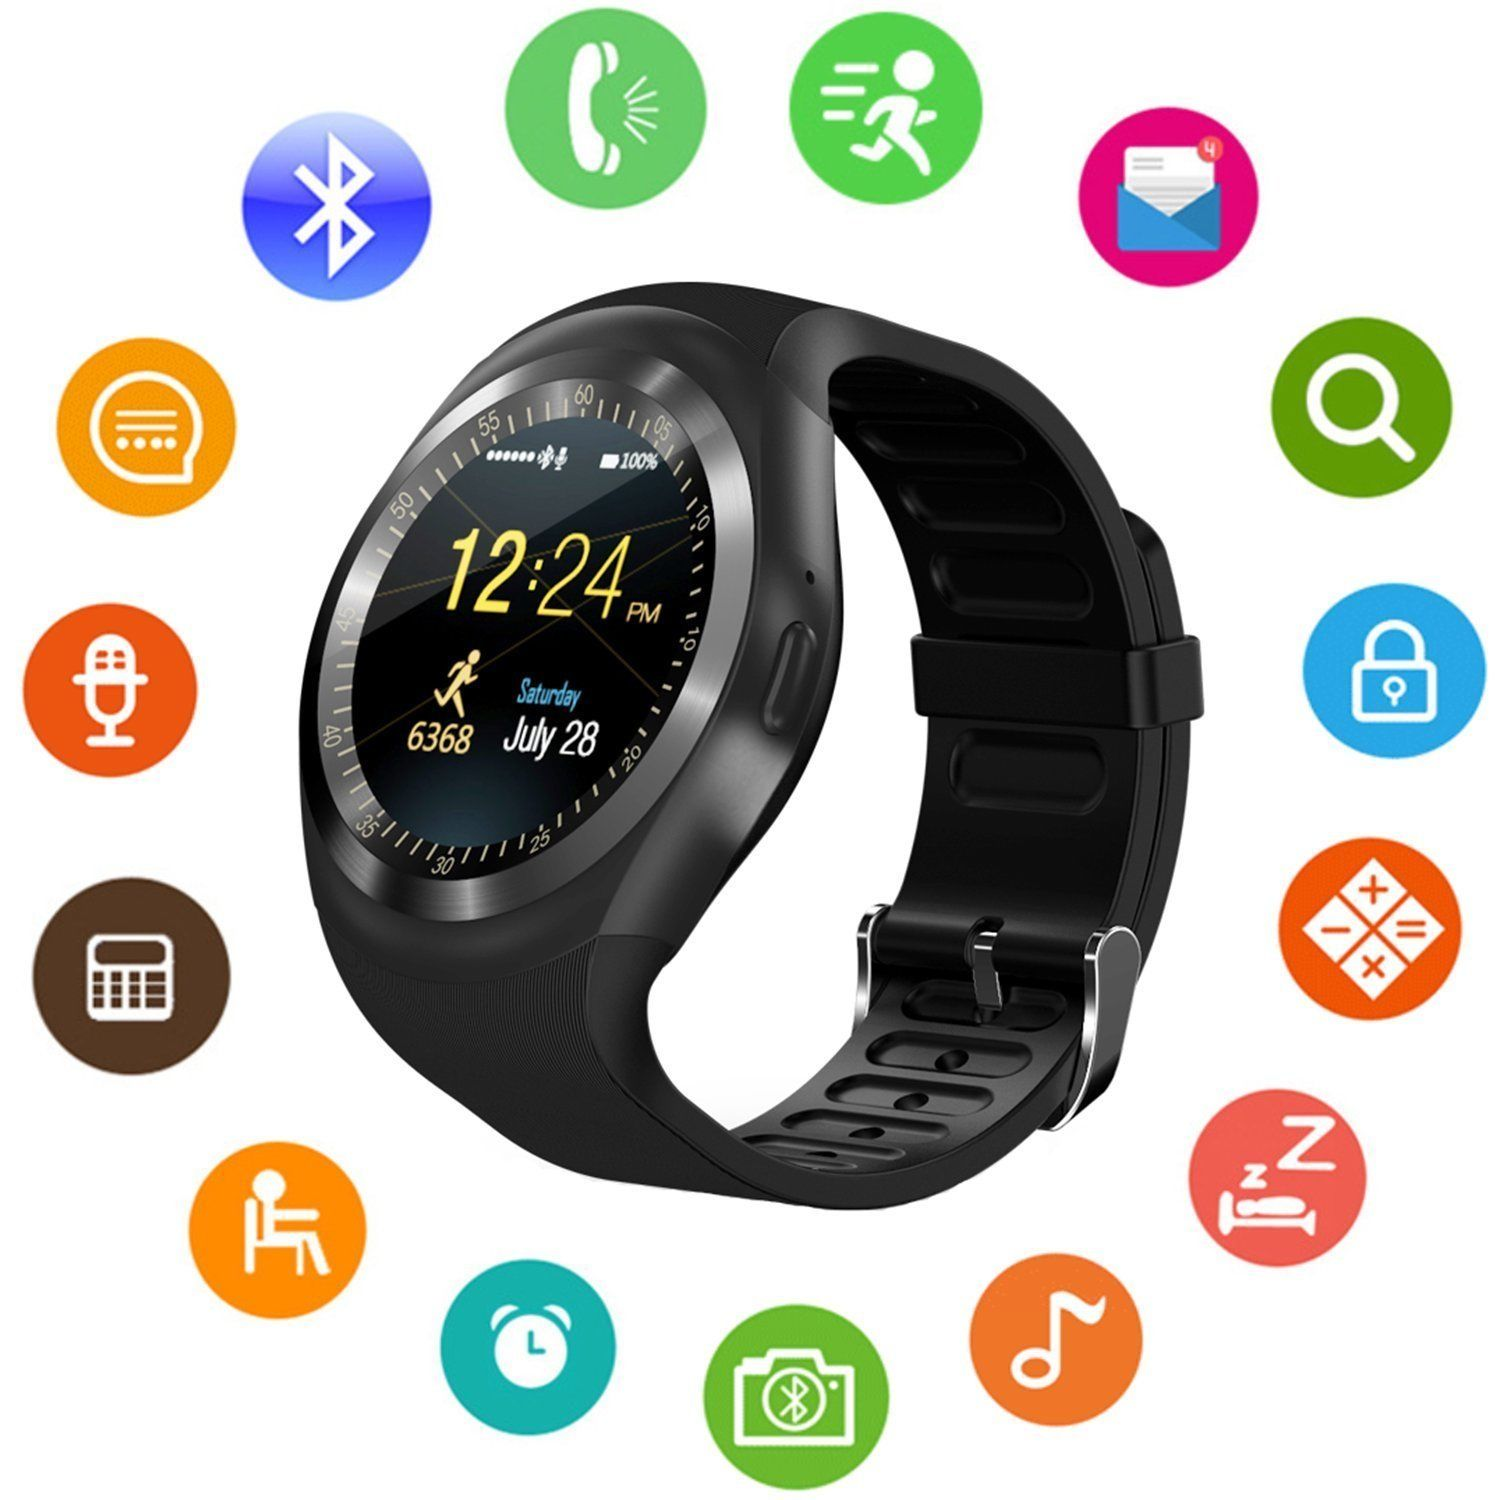 mobile watch phone johnlewis lewis blue pdp grey silver ionic buyfitbit fitness john com online at rsp fitbit smart watches main